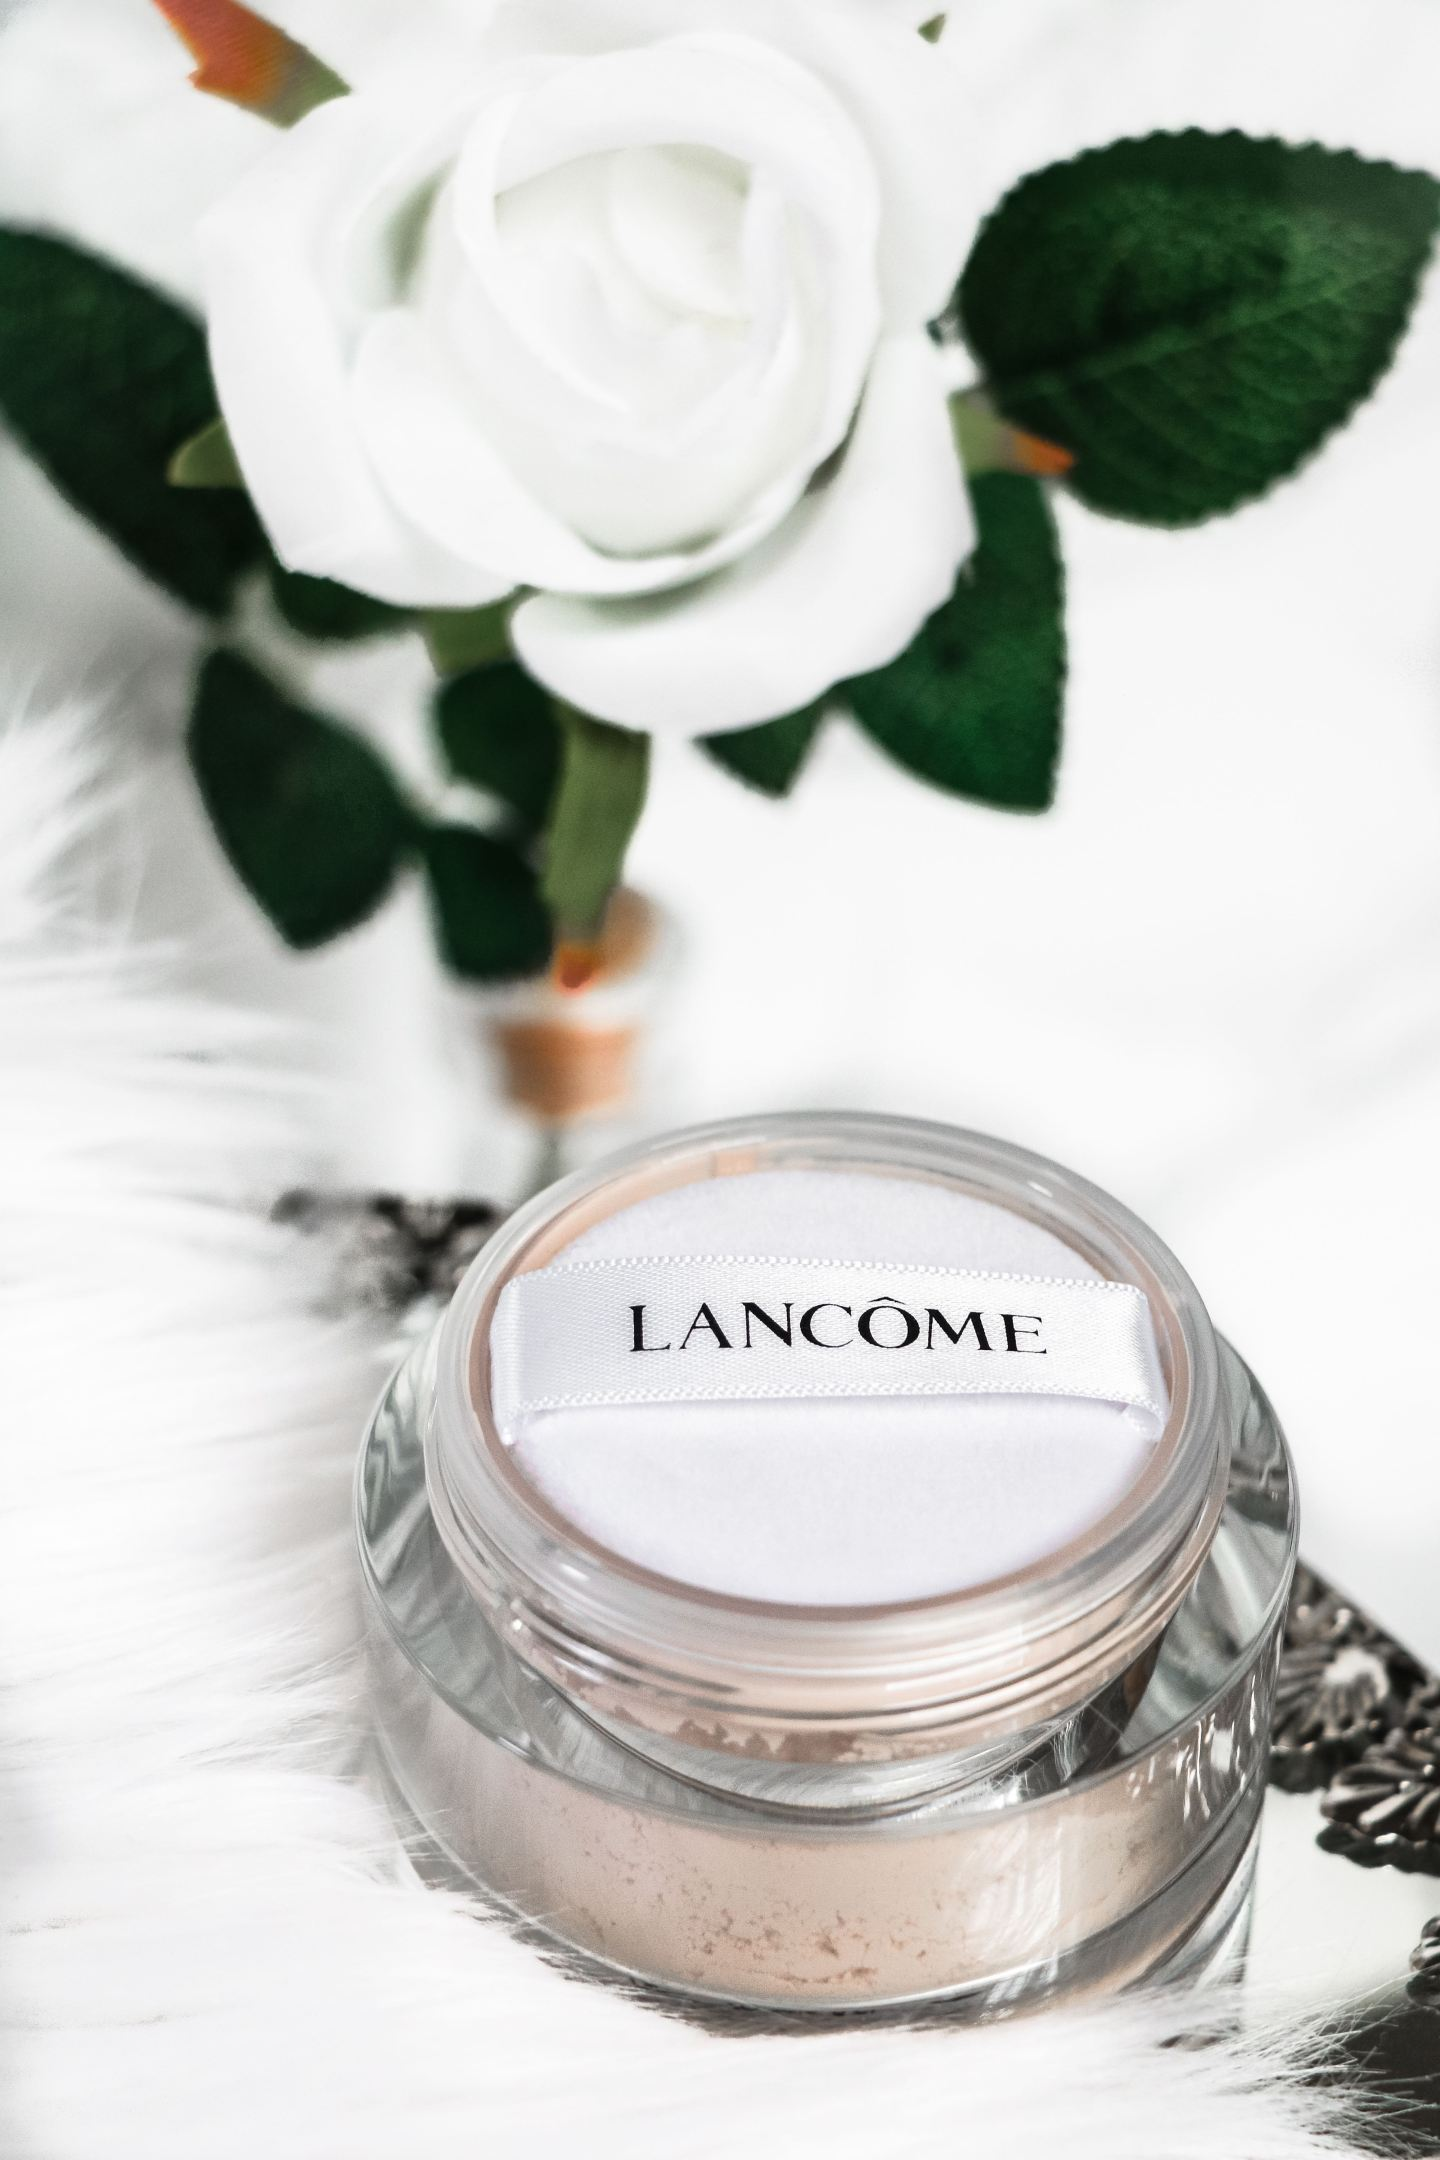 LANCÔME LONG TIME NO SHINE SETTING POWDER